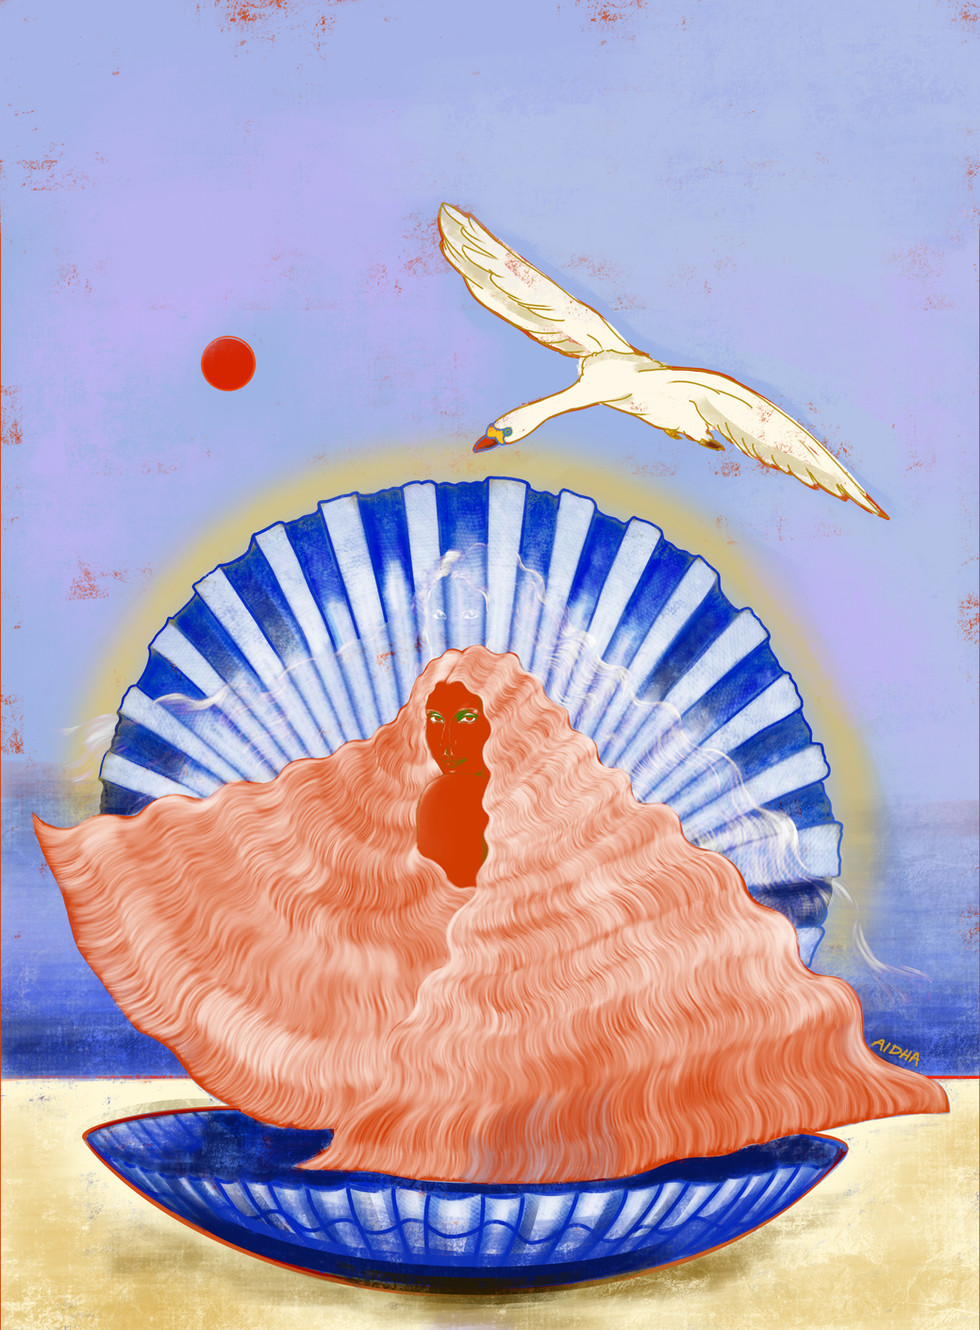 BLIND POINT OF DESIRE II (Woman Bathing Under The Red Sun)